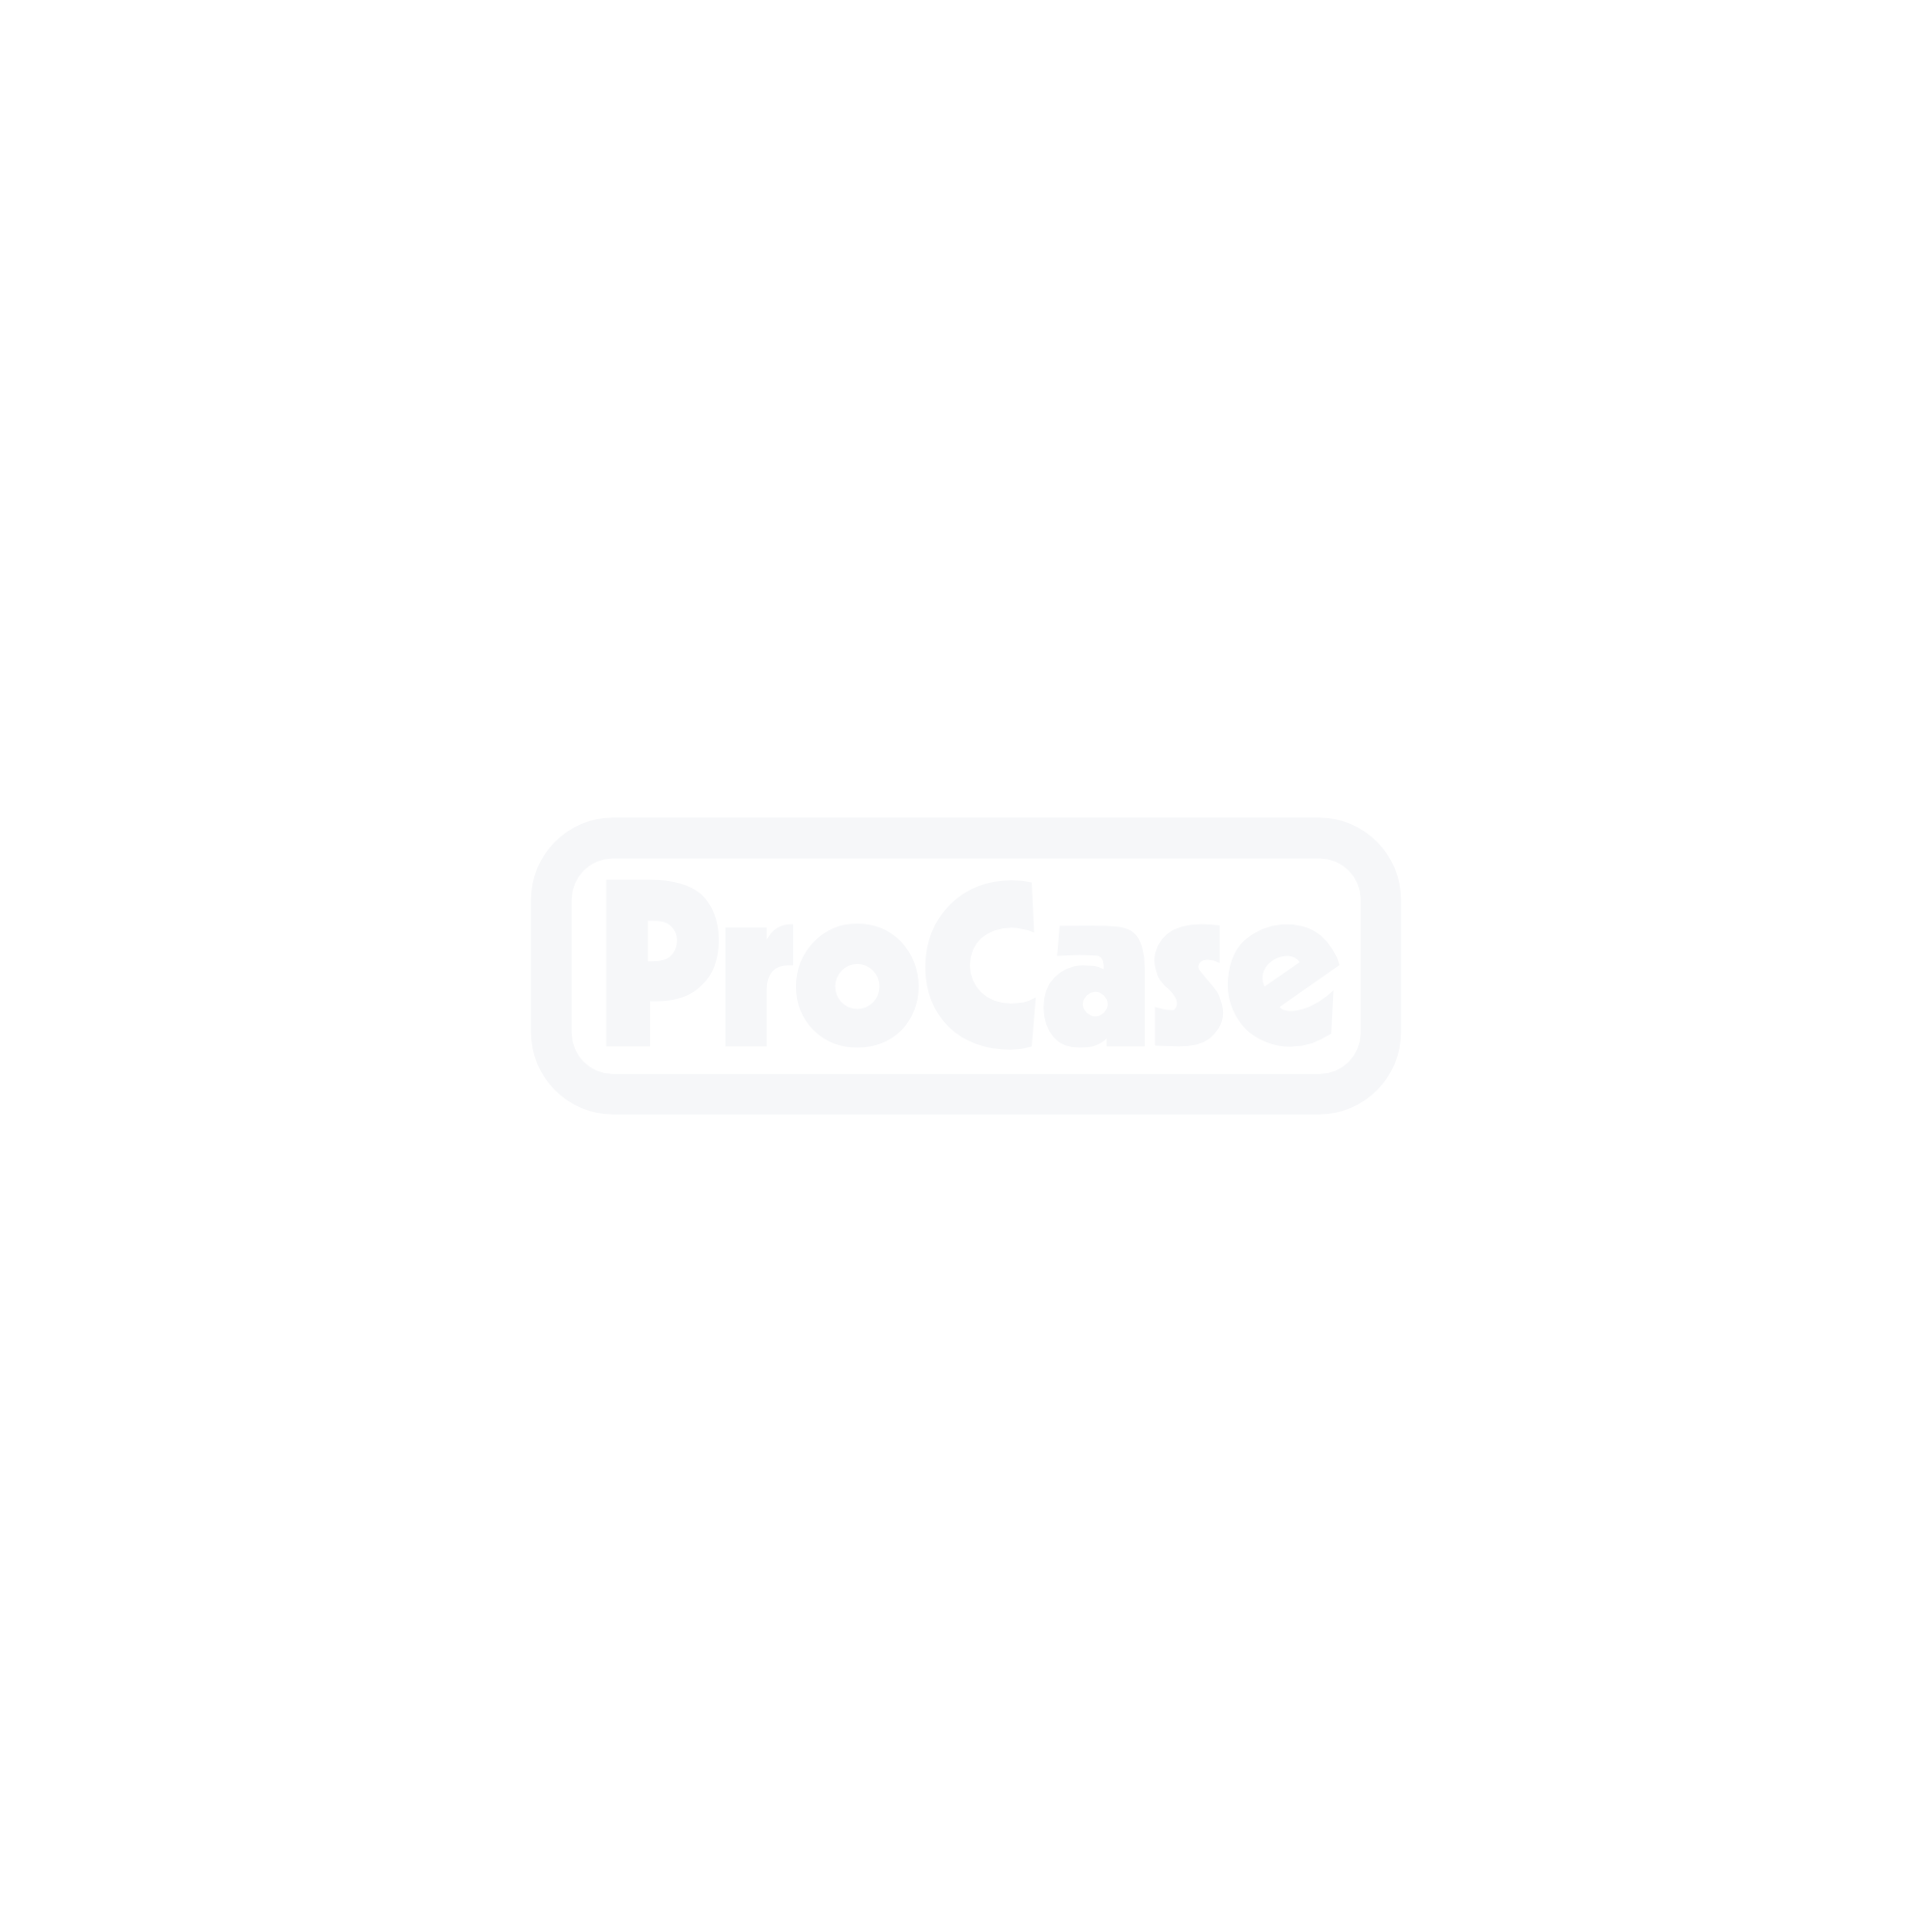 Traversen Transportwagen für Eurotruss Prolyte Milos Sweettruss 2